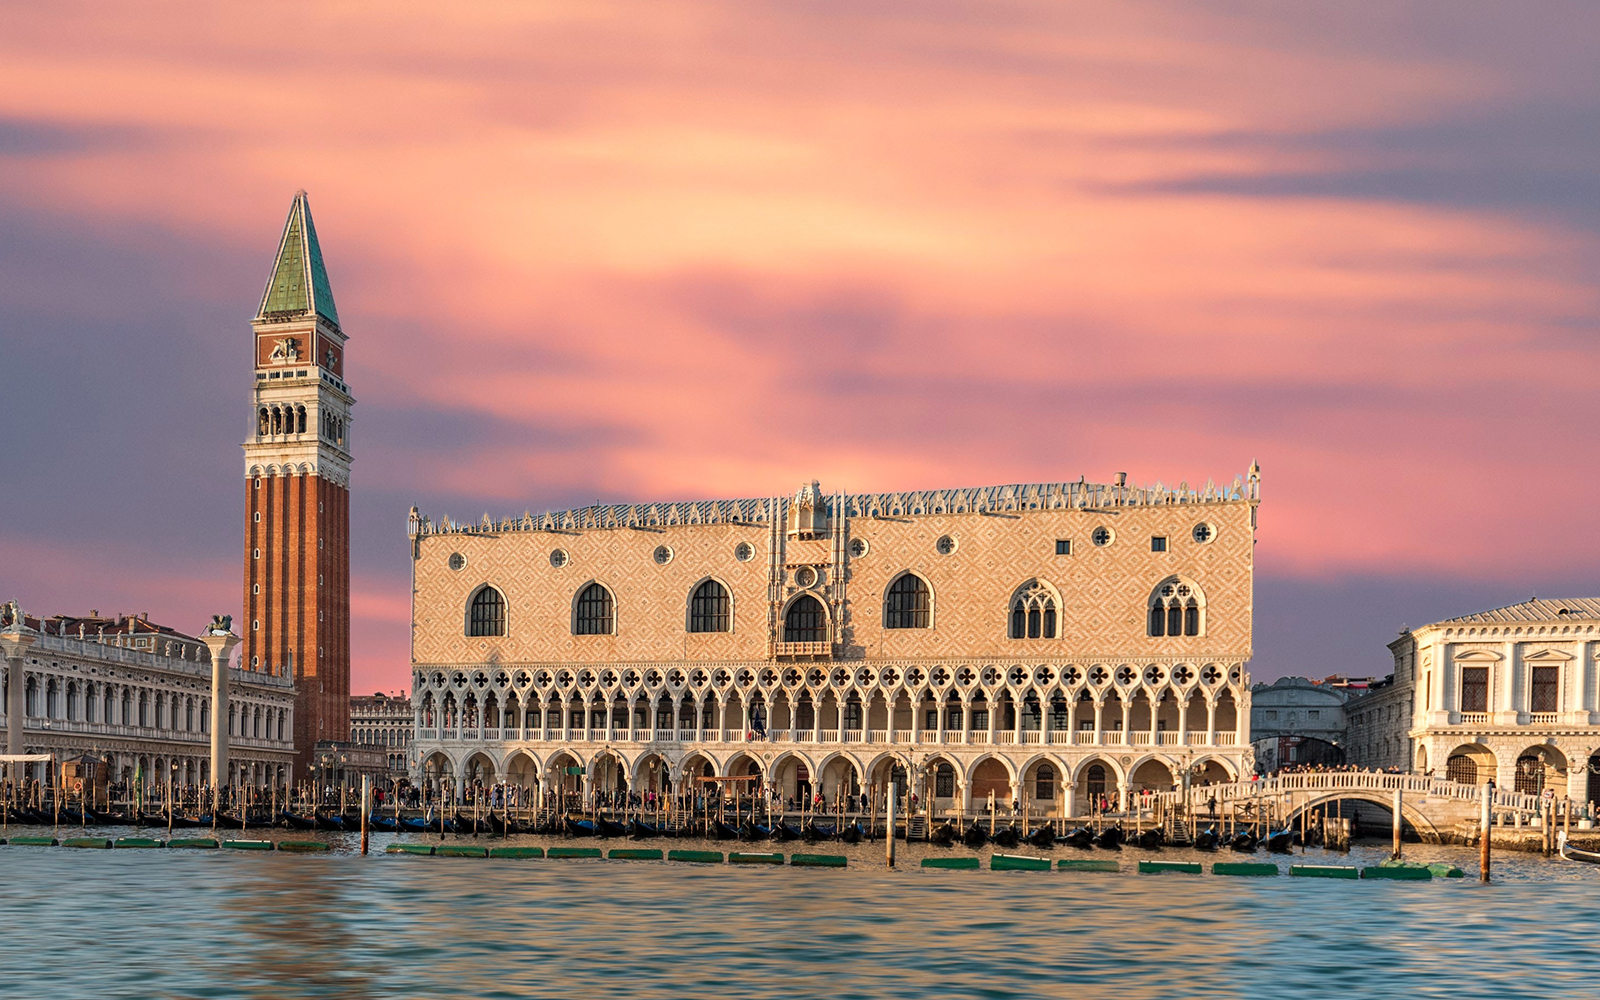 C6c33f00 23b7 4e5a add3 07a0e2e1081e 8585 venice st marks basilica and doge palace guided tour skip the line 06